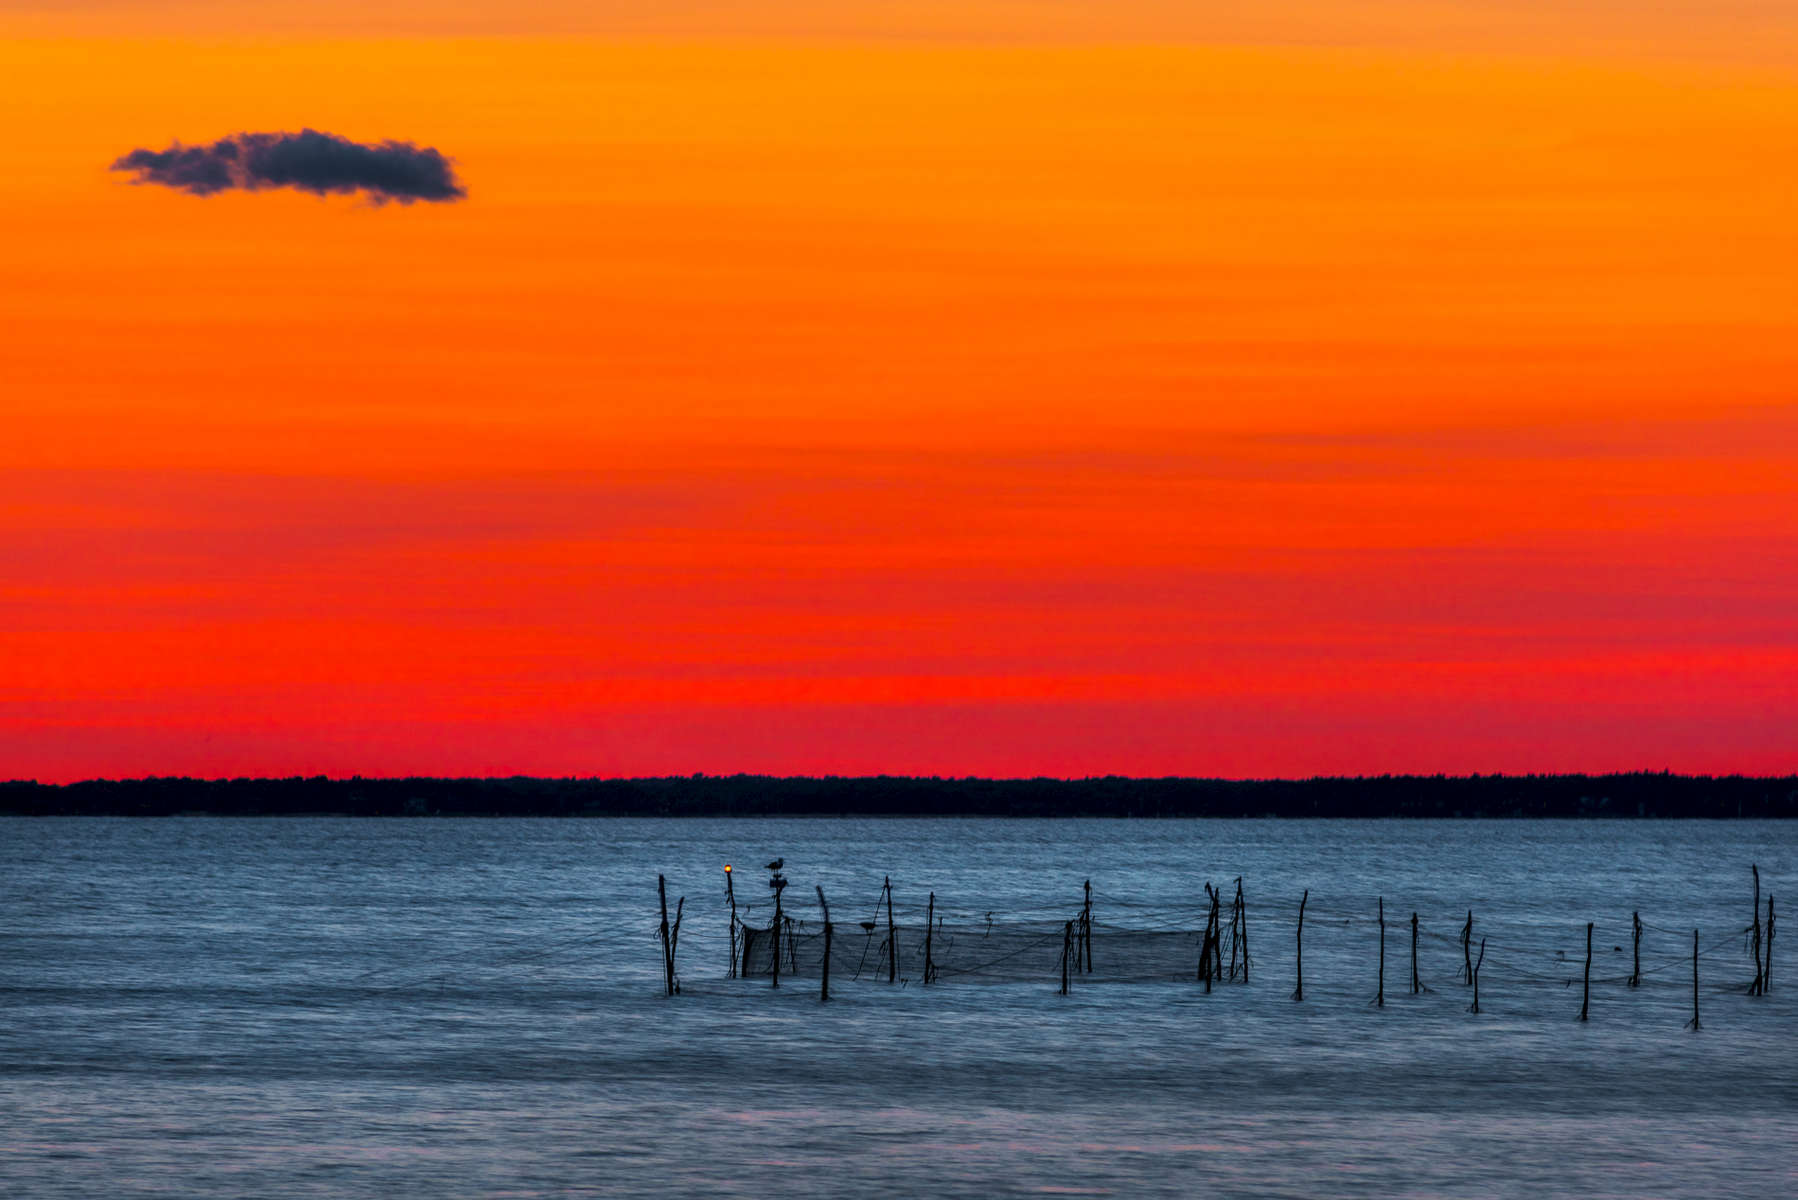 Bird On A Wire. Sunset/Landscape shot by fine art photographer John Mazlish on the beach outside of Sag Harbor, NY. Ideal artwork for home interiors, hotel and corporate settings.